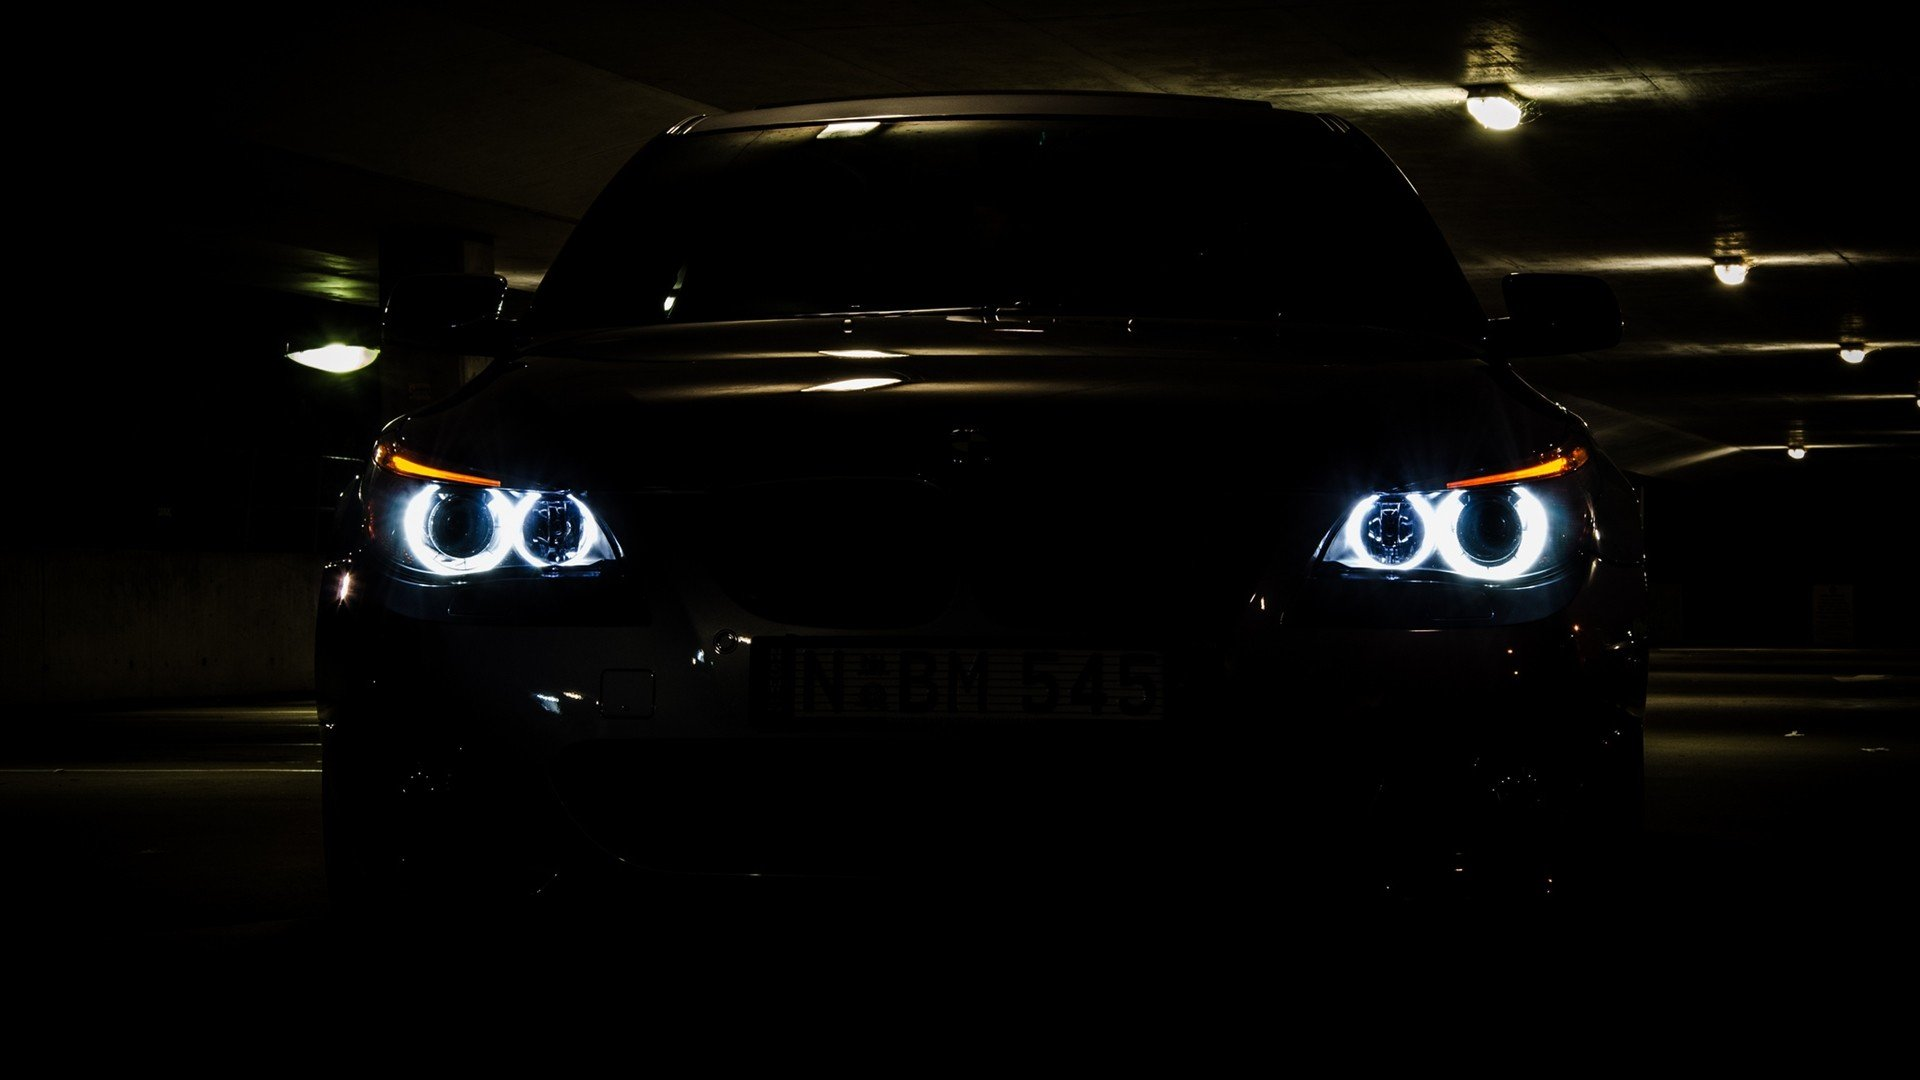 Images For Cars Wallpaper Bmw Lights Cars Vehicles Bmw 5 Series Bmw E60 Automobile